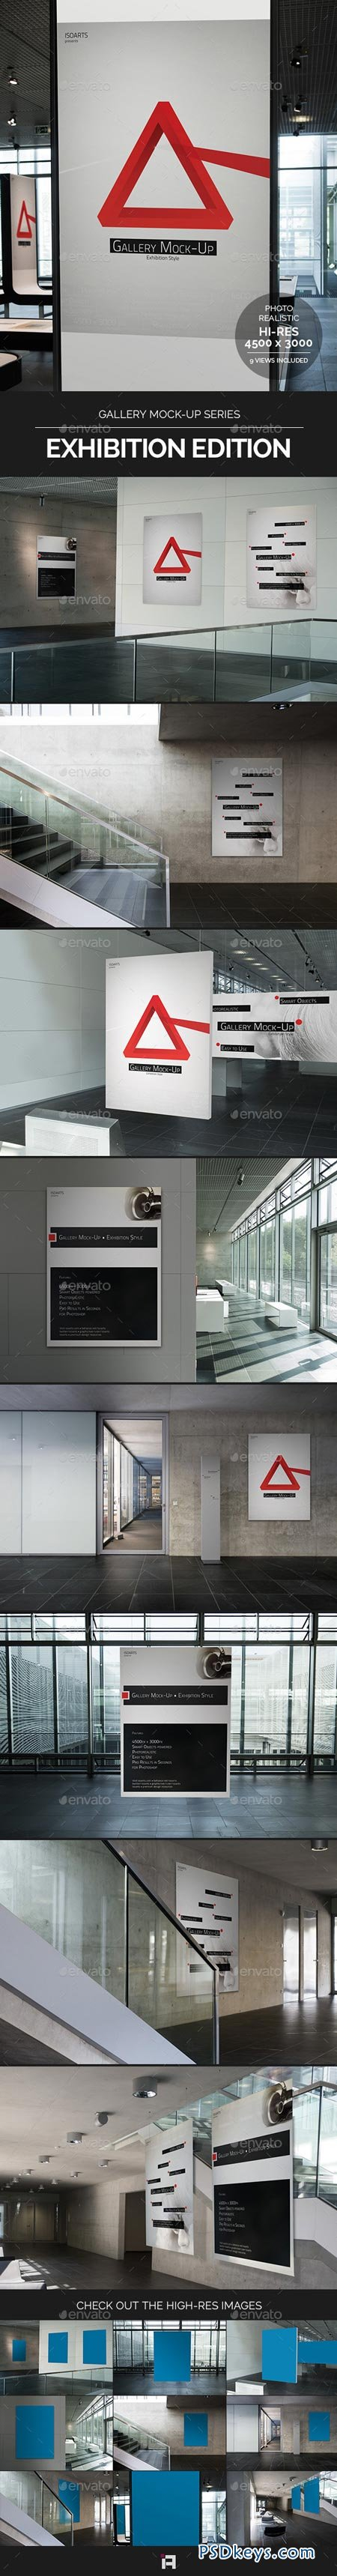 Gallery Mock-Up Series • Exhibition Edition 9067807